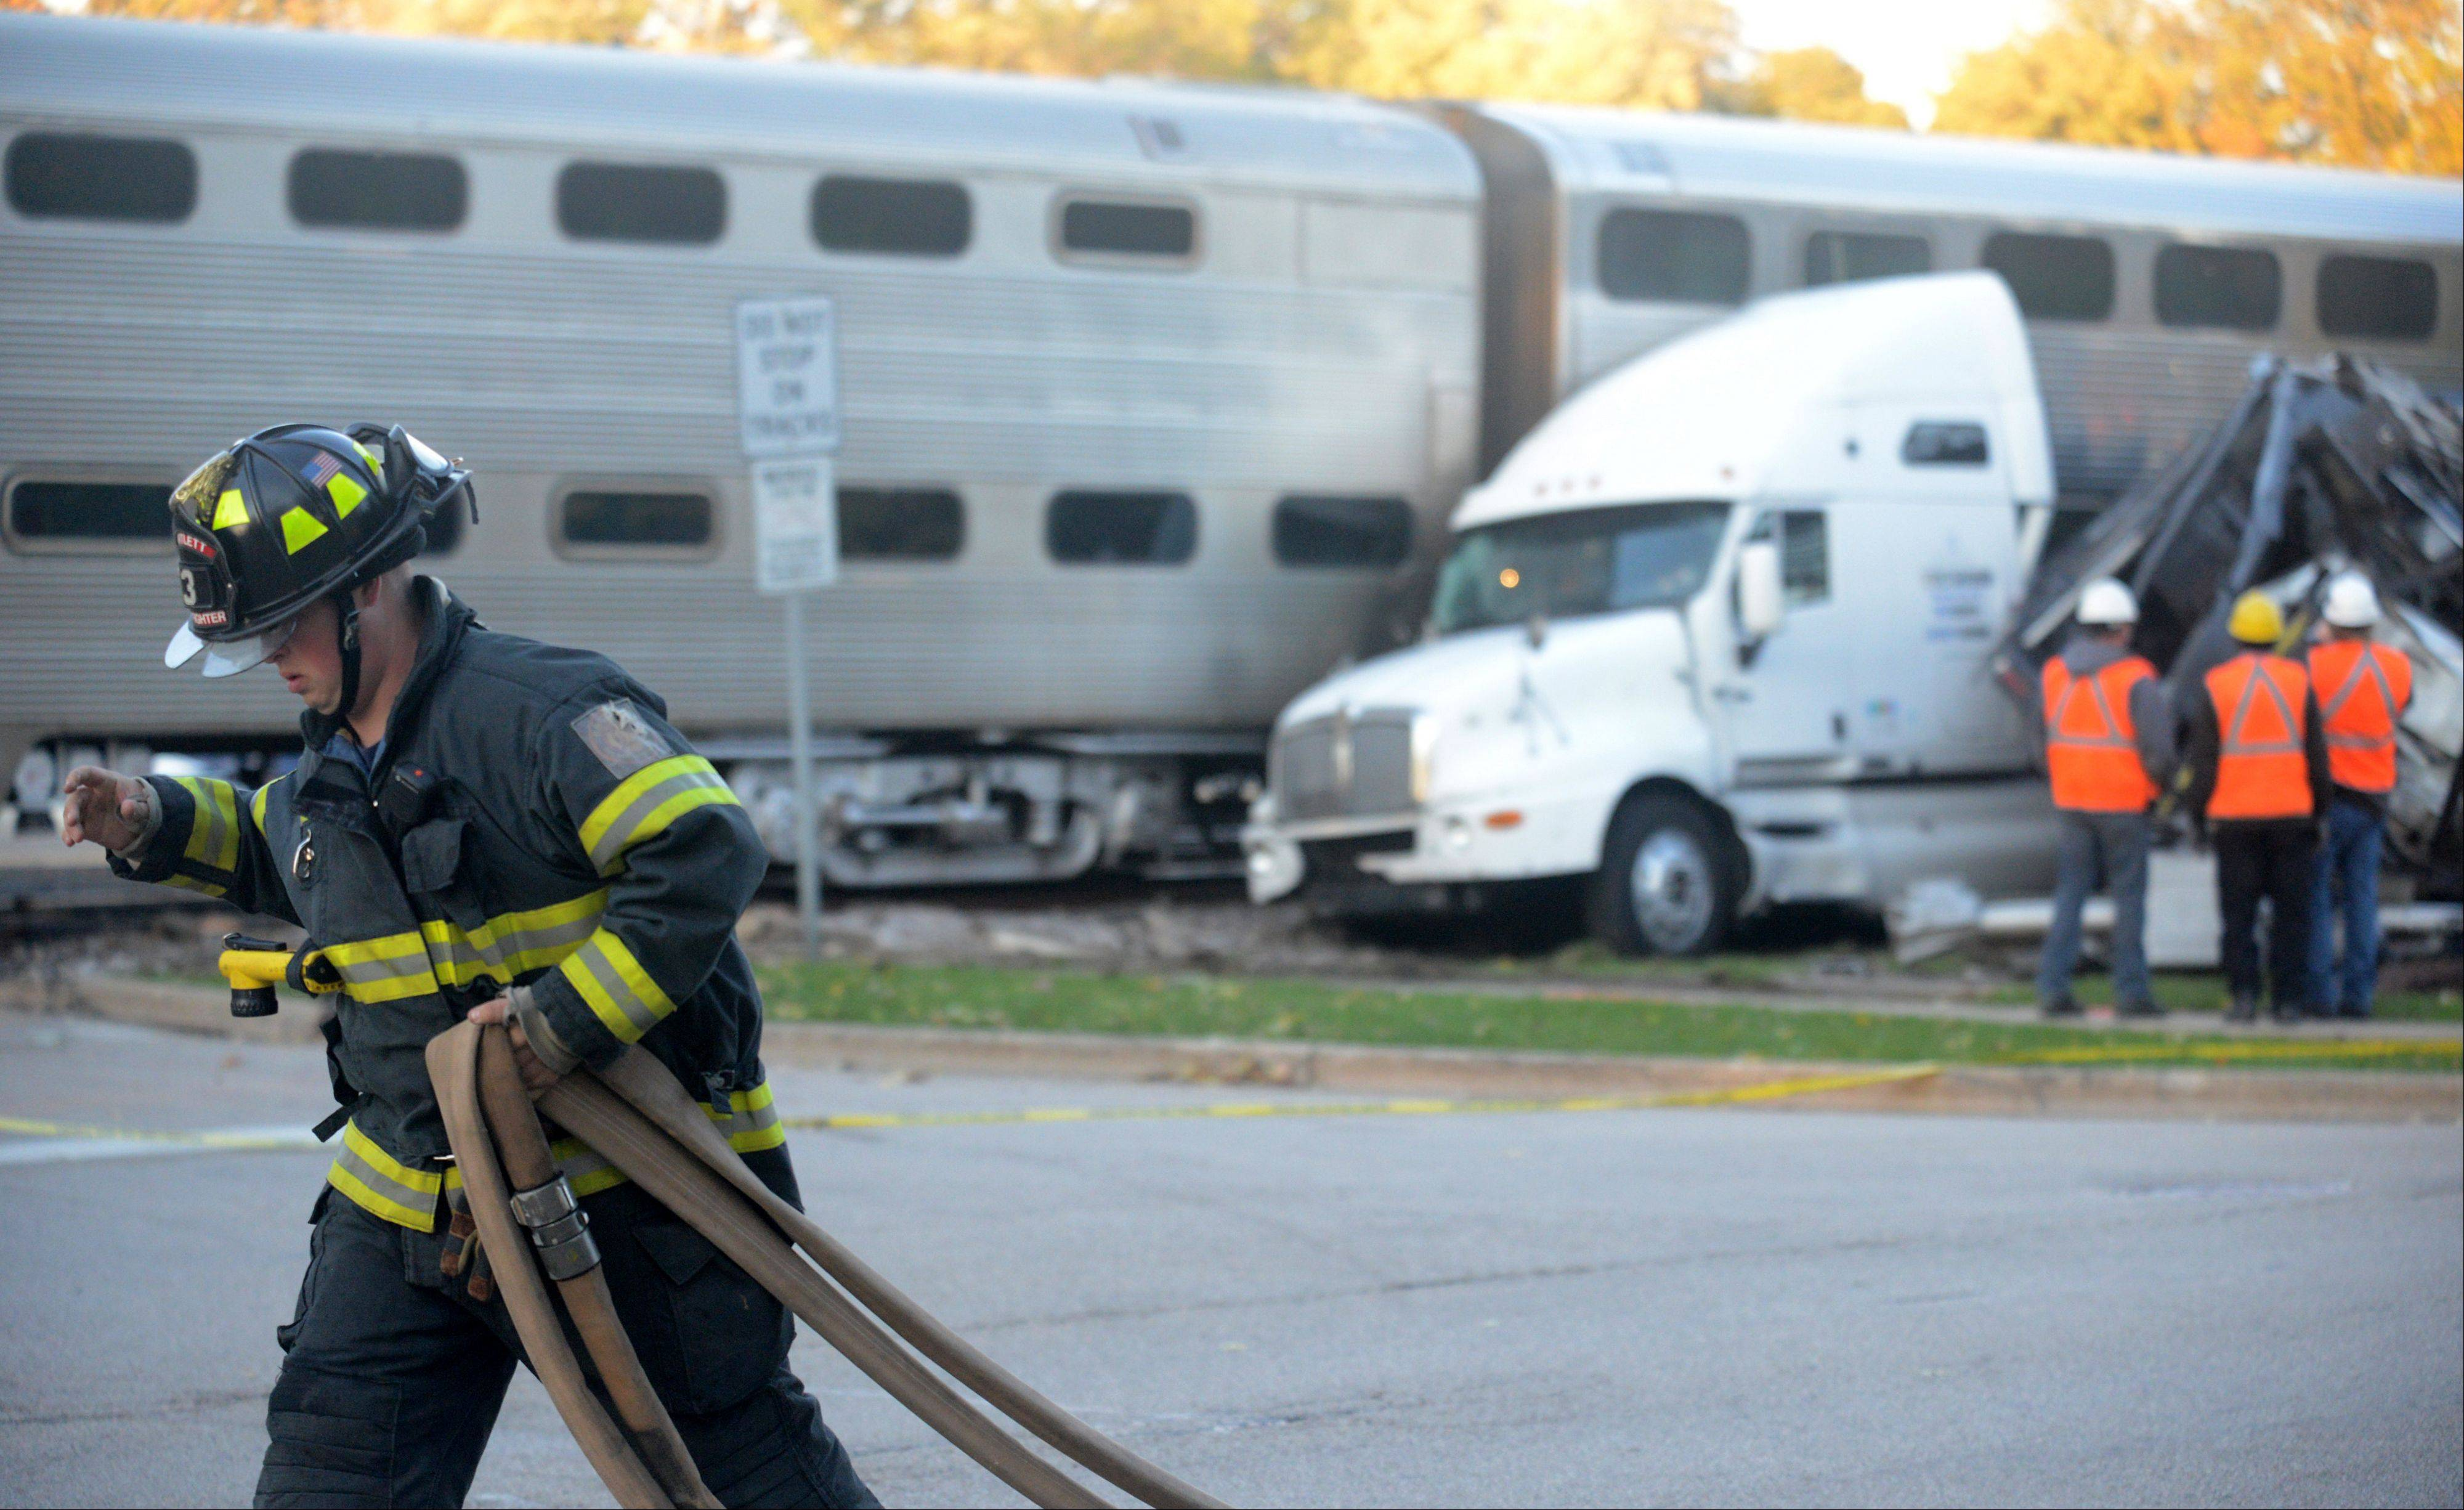 A Metra commuter train on Monday evening just west of the Bartlett train station struck a semitrailer truck loaded with automobiles. At least one coach of the train derailed in the process, and several automobiles parked along the tracks were damaged.